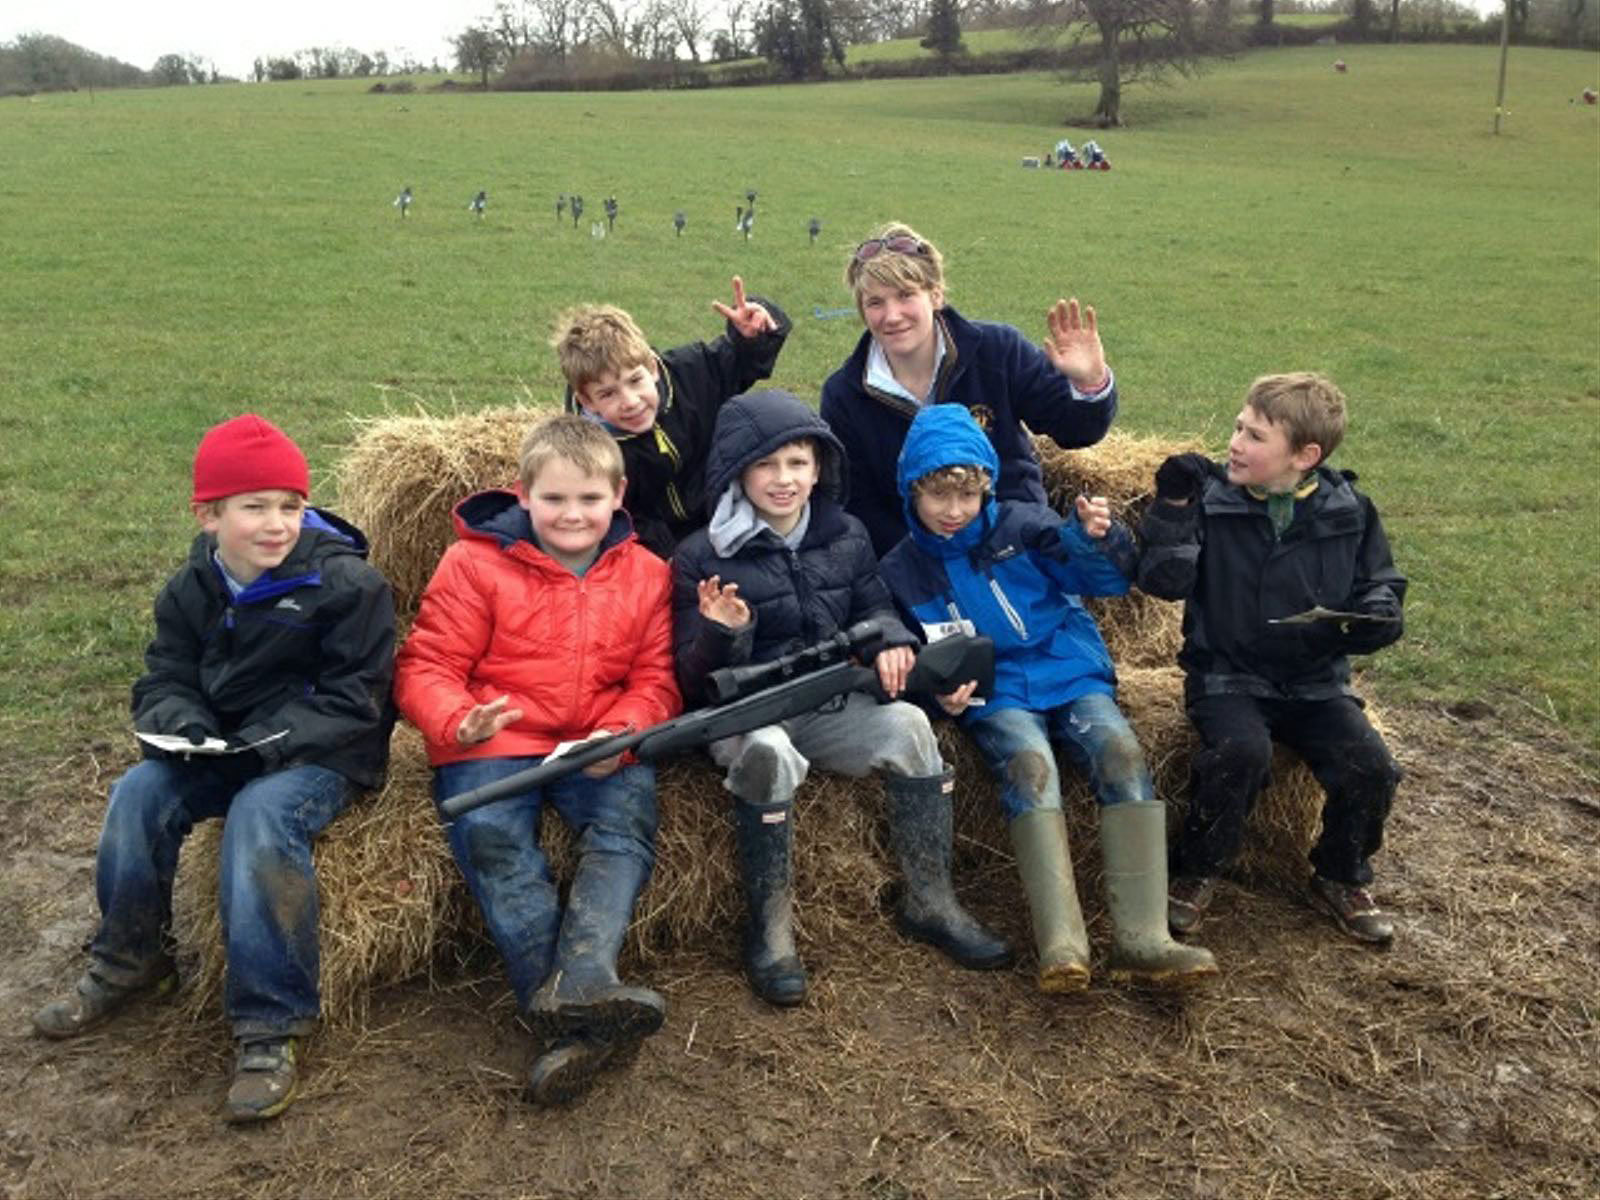 Clay shooting children, clay shooting kids, tuition, novice clay shoot, clay shoot lessons, clay target tuition exmoor